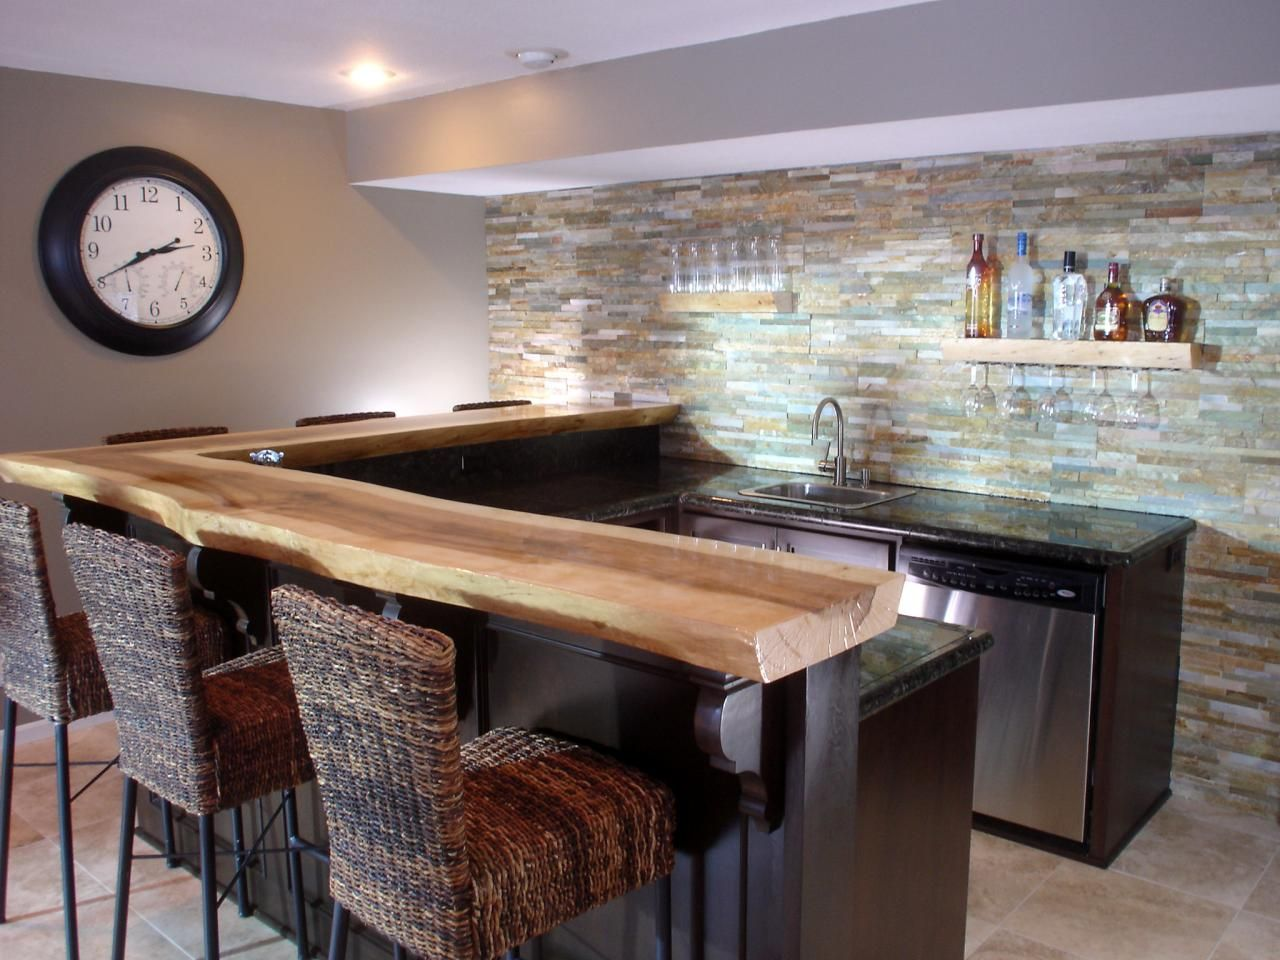 Bar Designs Ideas sports bar decor restaurant bar designs ideas Home Bar Ideas 89 Design Options